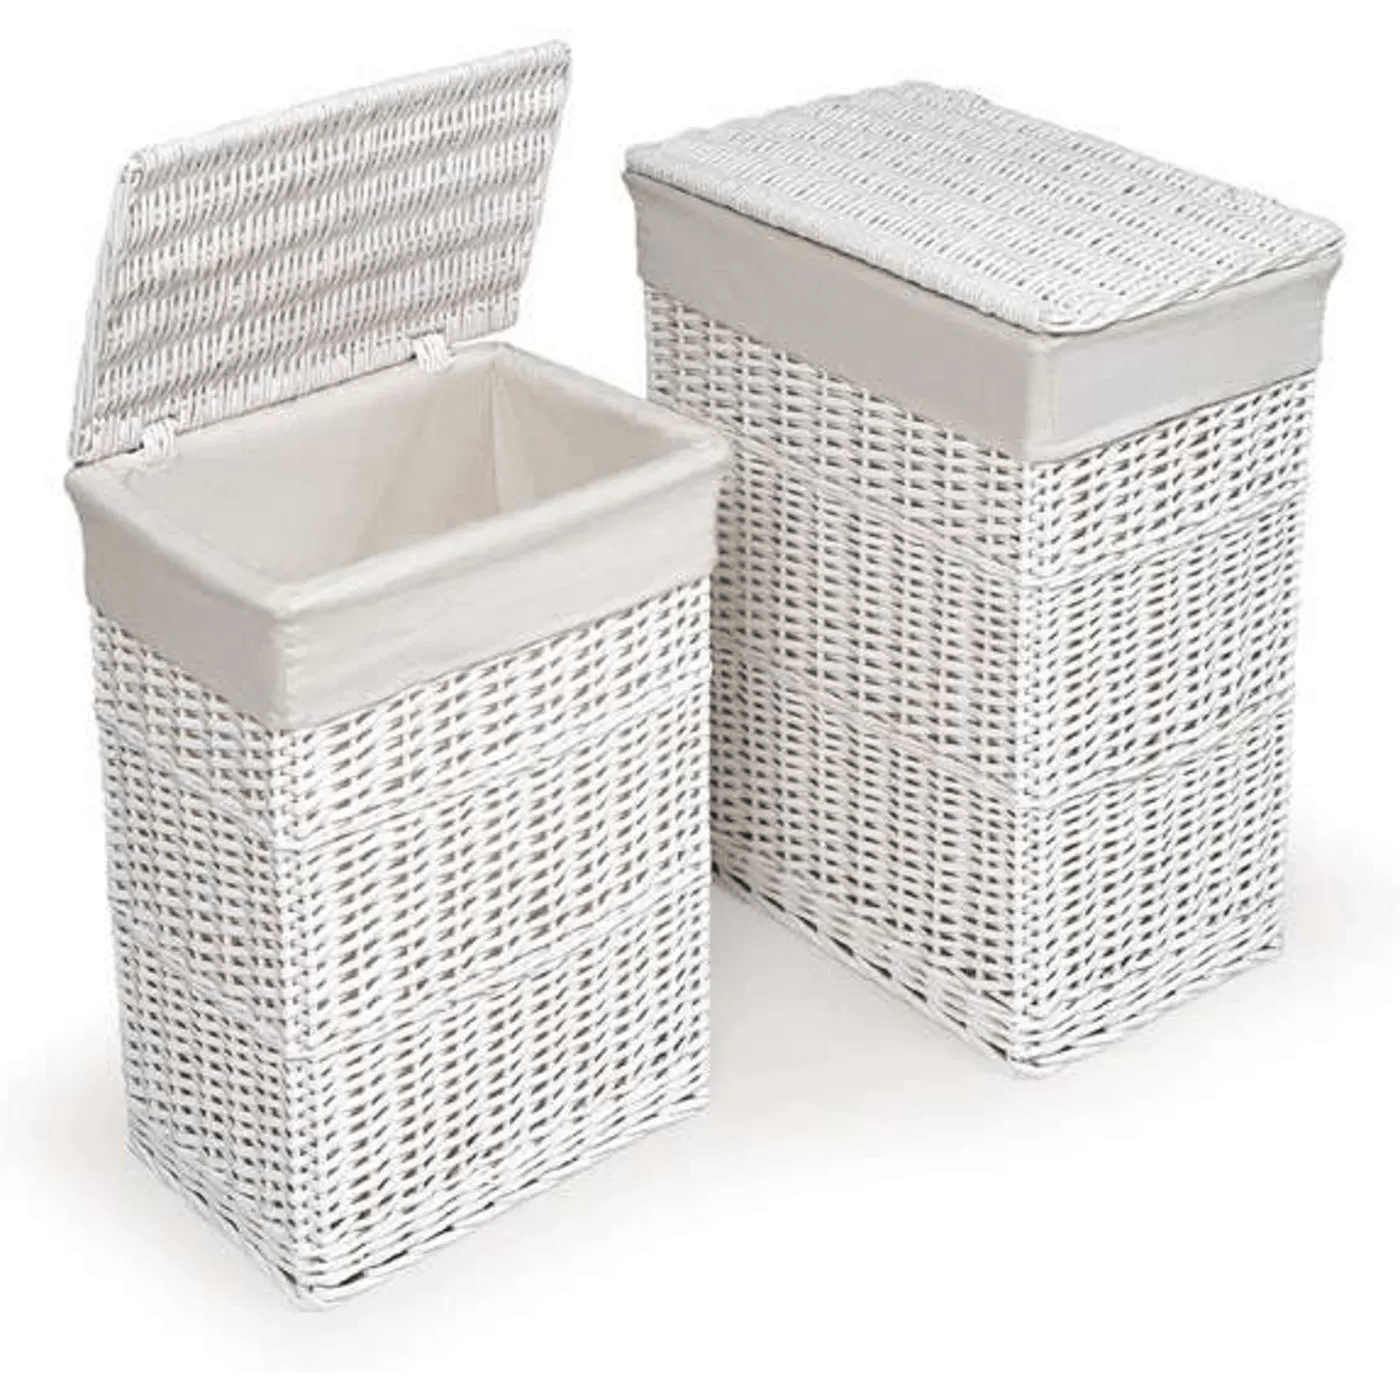 White Hamper With Liner Badger Basket White Two Hamper Set With Liners And Reviews